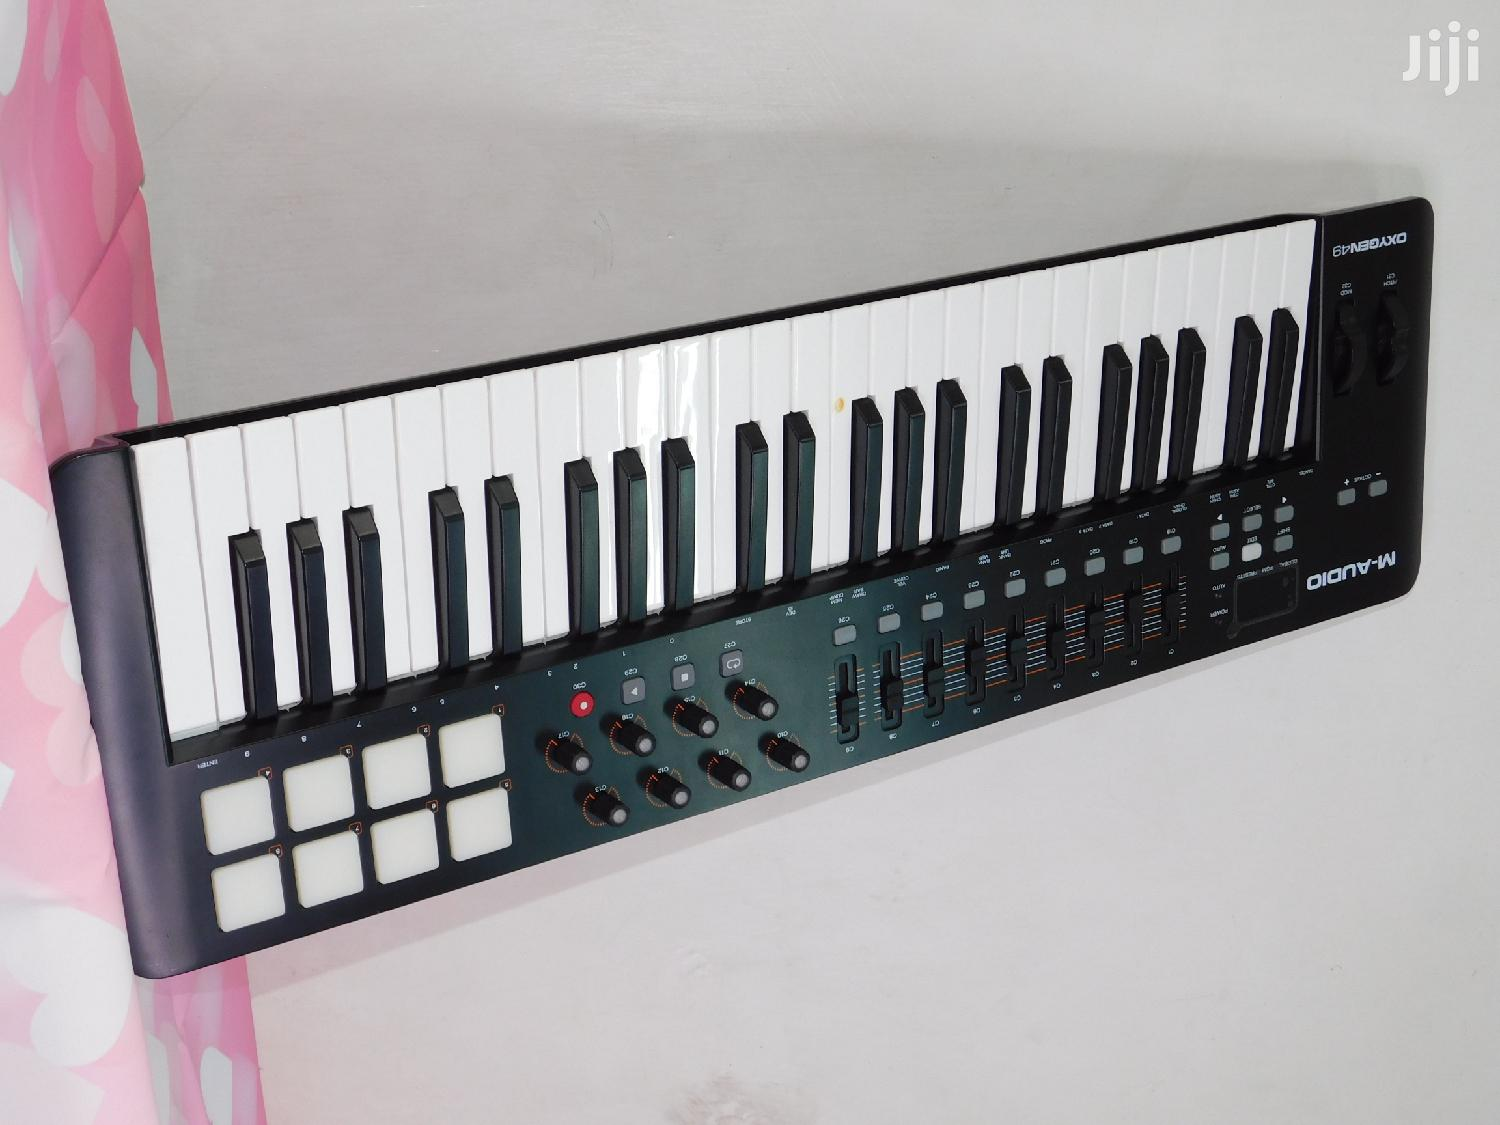 M-audio Midi Oxygen 49 Keyboard Drum Pad Etc Mido Keyboard | Musical Instruments & Gear for sale in Nairobi Central, Nairobi, Kenya